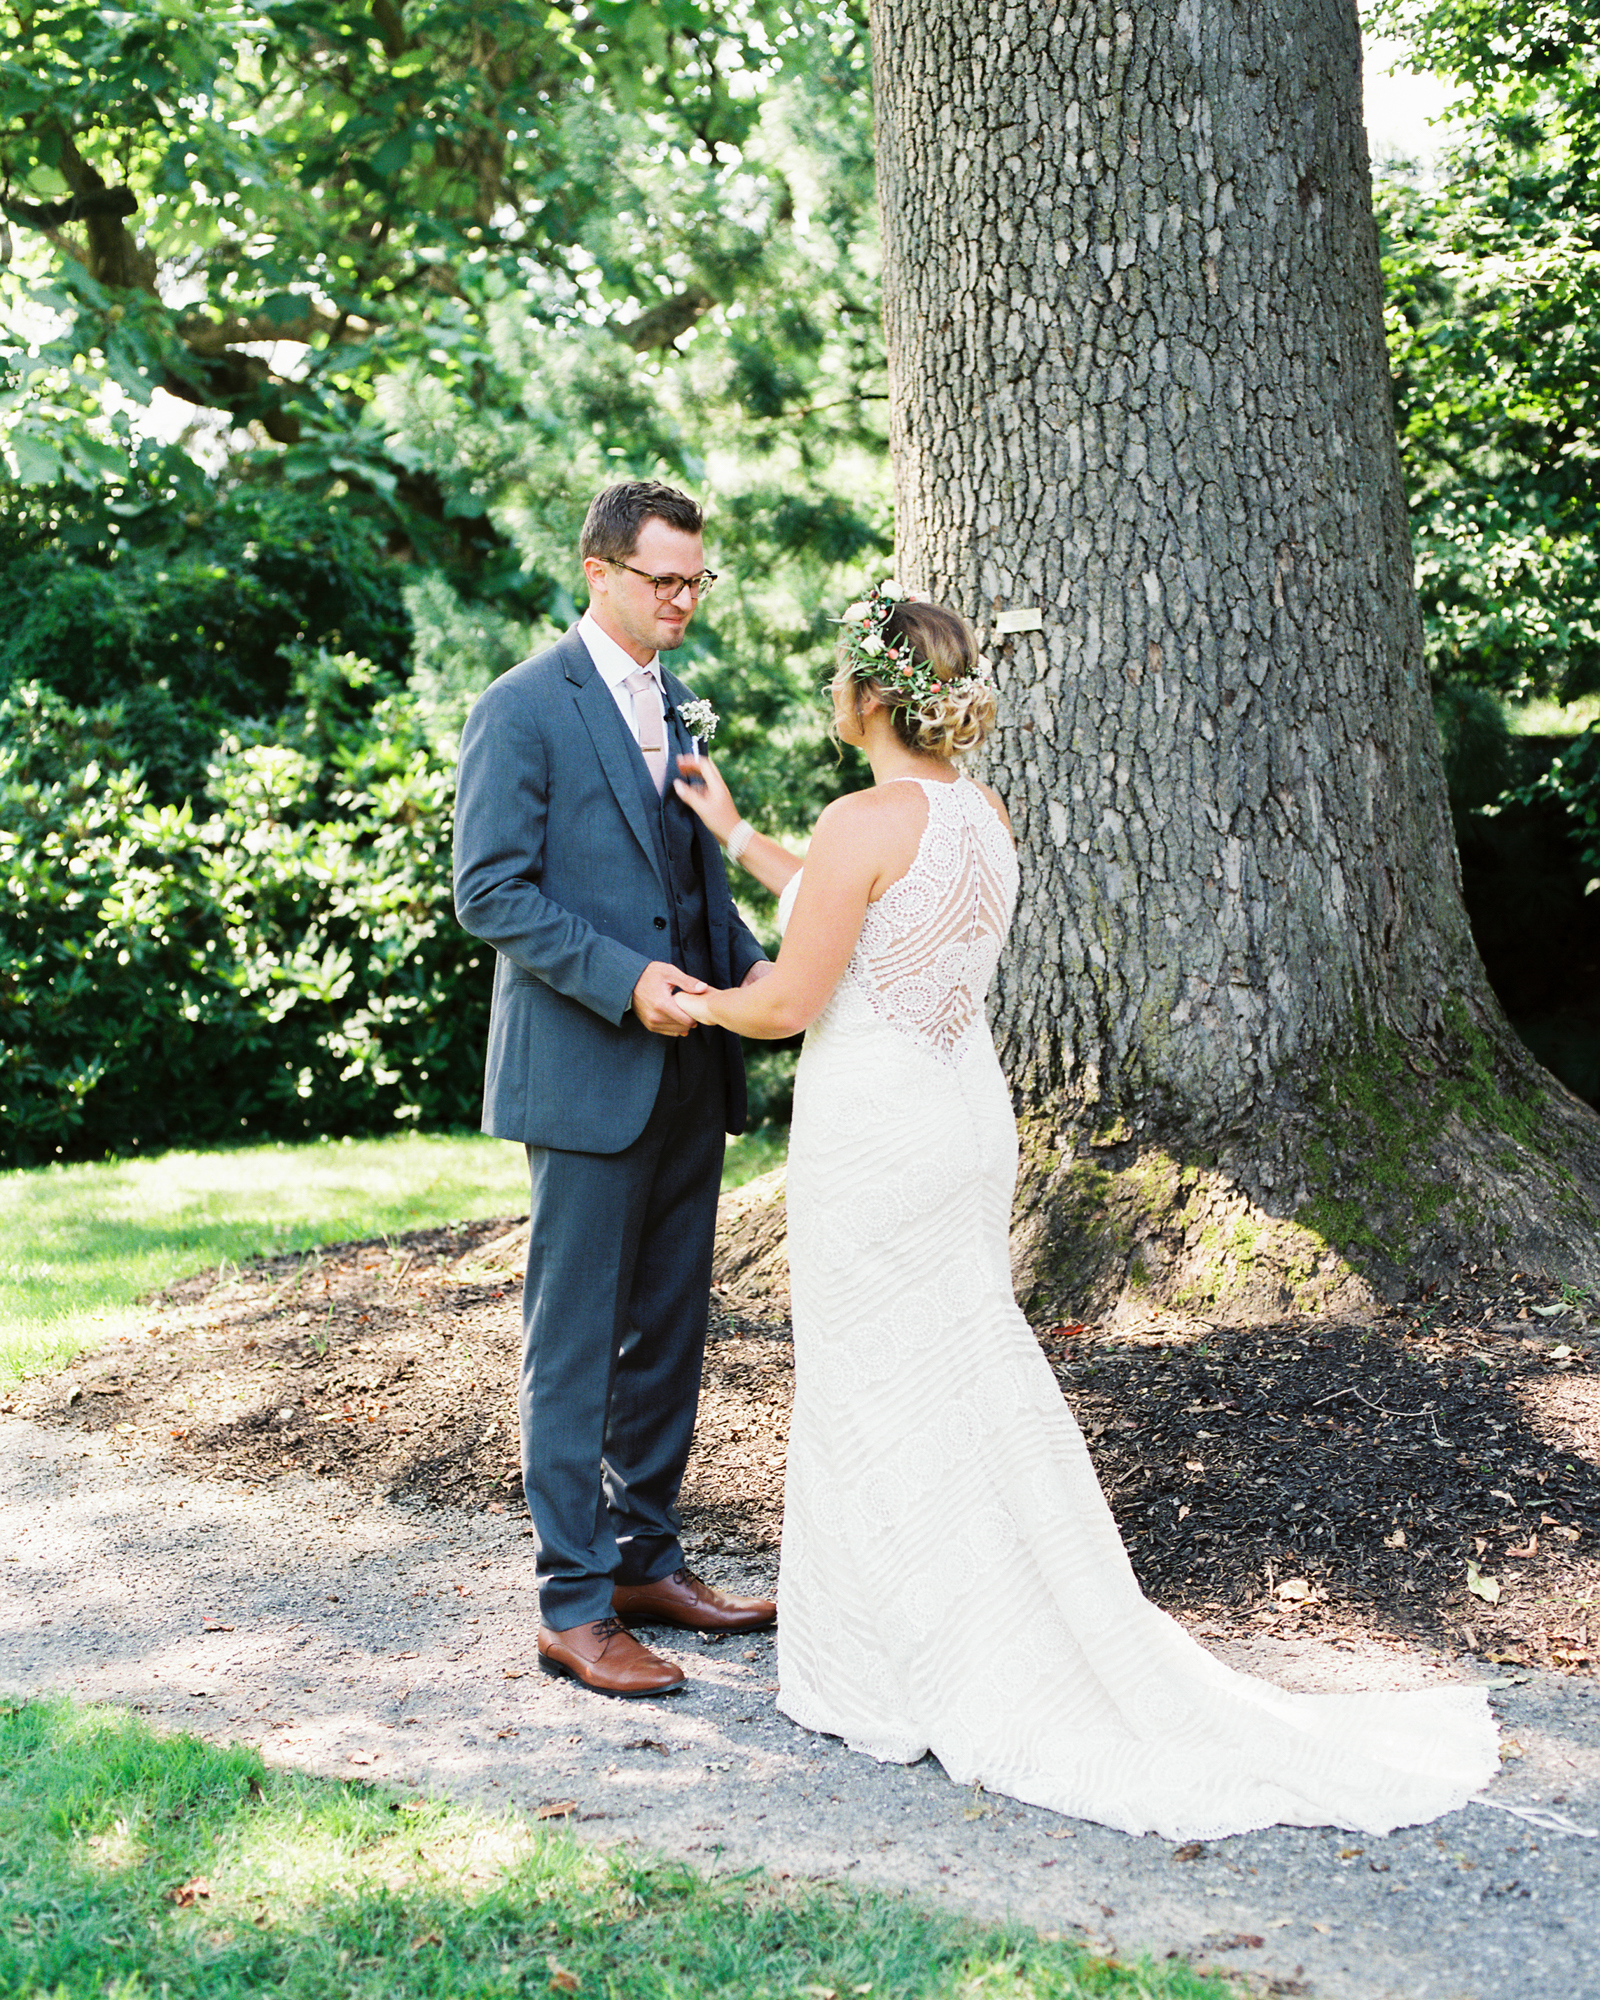 film-wedding-family-photographer-charlotte-carriage-house-rockwood-park-wilmington-delaware-27.jpg